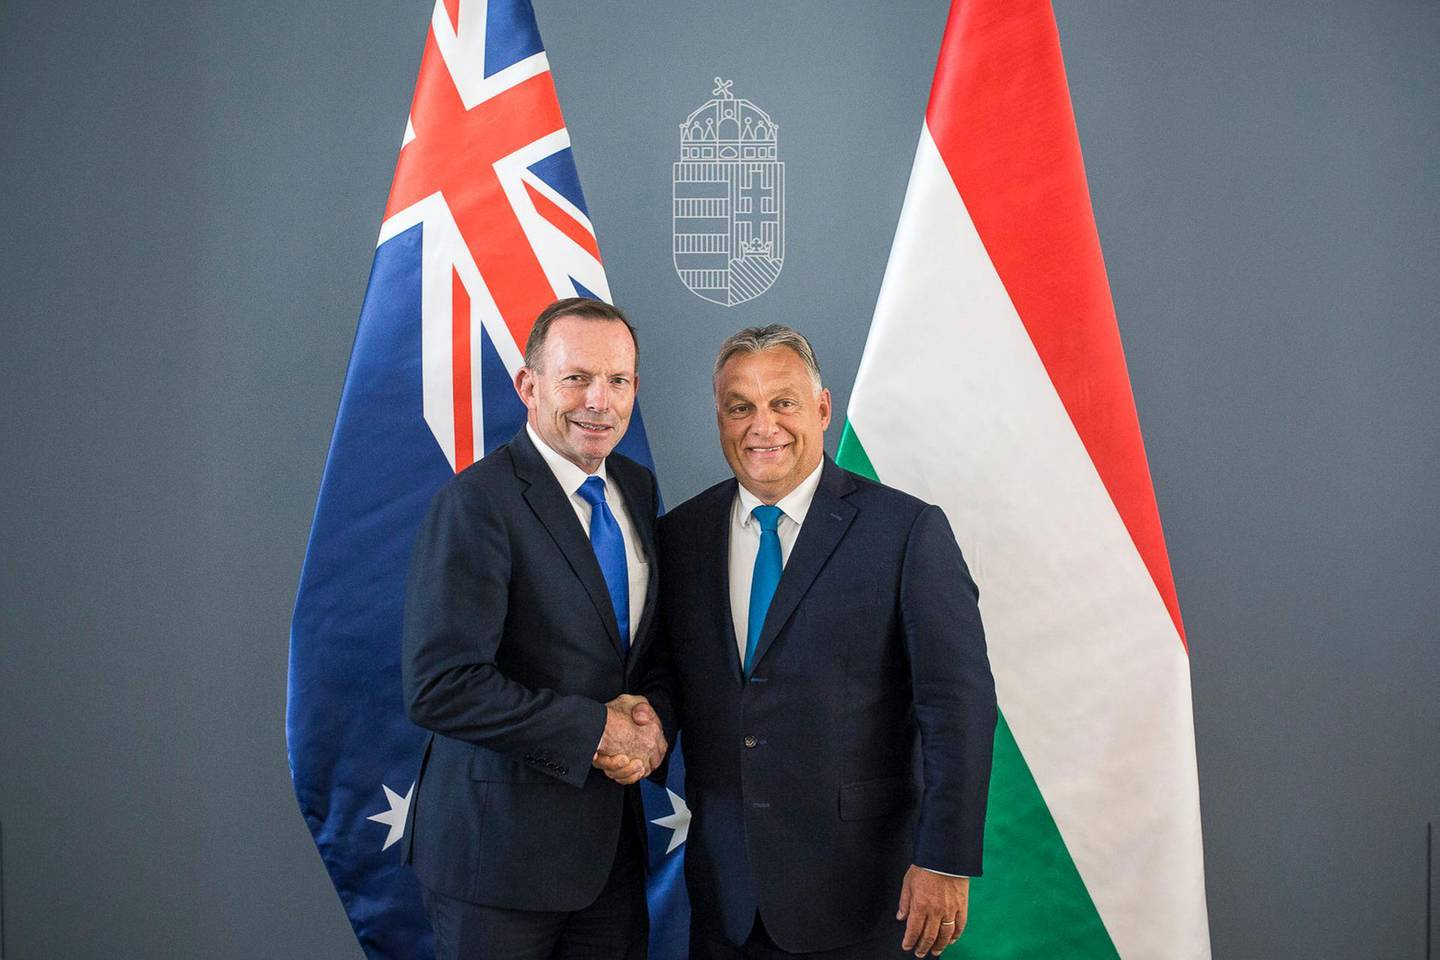 epa07819844 A handout photo made available by the Hungarian Prime Minister's Press Office showing Hungarian Prime Minister Viktor Orban (R) receiving former Prime Minister of Australia Tony Abbott in his office in Budapest, Hungary, 05 September 2019. Media reports state that Tony Abbott addressed the third Budapest Demographic Summit where he delivered a warning about the 'shrinking West' and urged Britain to leave the EU even without a deal.  EPA/Hungarian Prime Minister's Press Office / HANDOUT HUNGARY OUT HANDOUT EDITORIAL USE ONLY/NO SALES